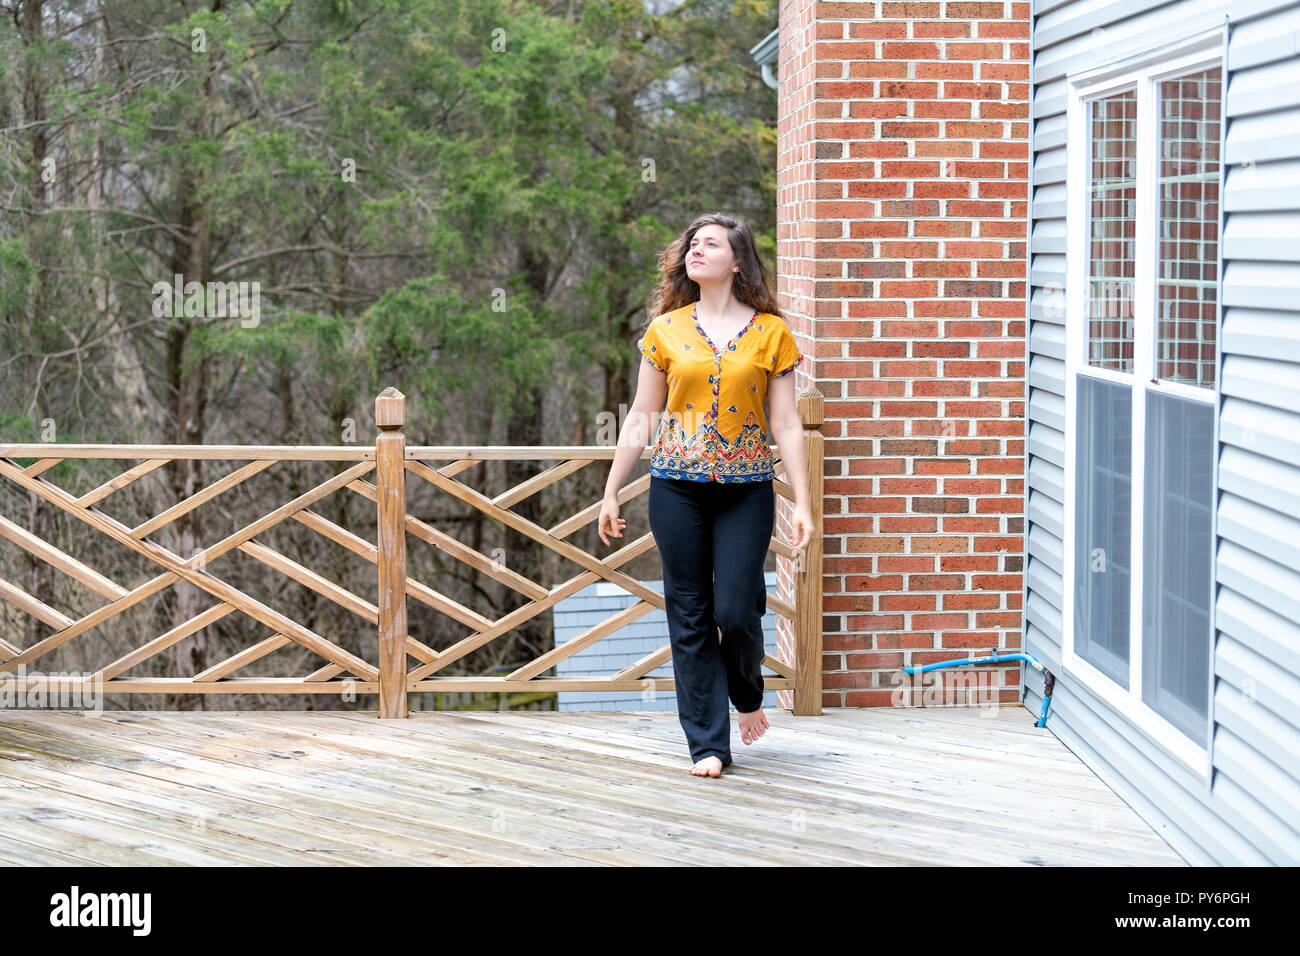 One young woman walking outside, outdoors barefoot on wooden house, home deck, looking up, homeowner at backyard, front yard - Stock Image